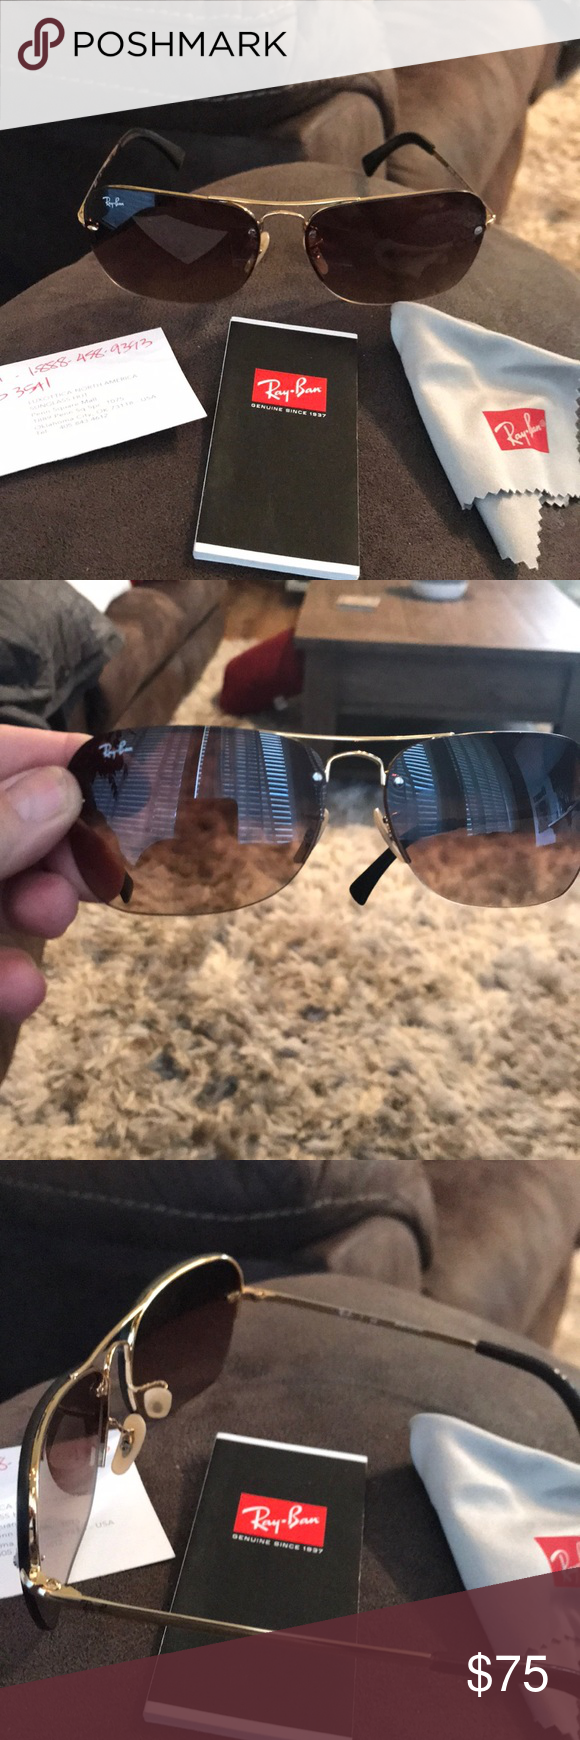 Ray Ban Sunglasses These Beauties Cone With Everything Lifetime